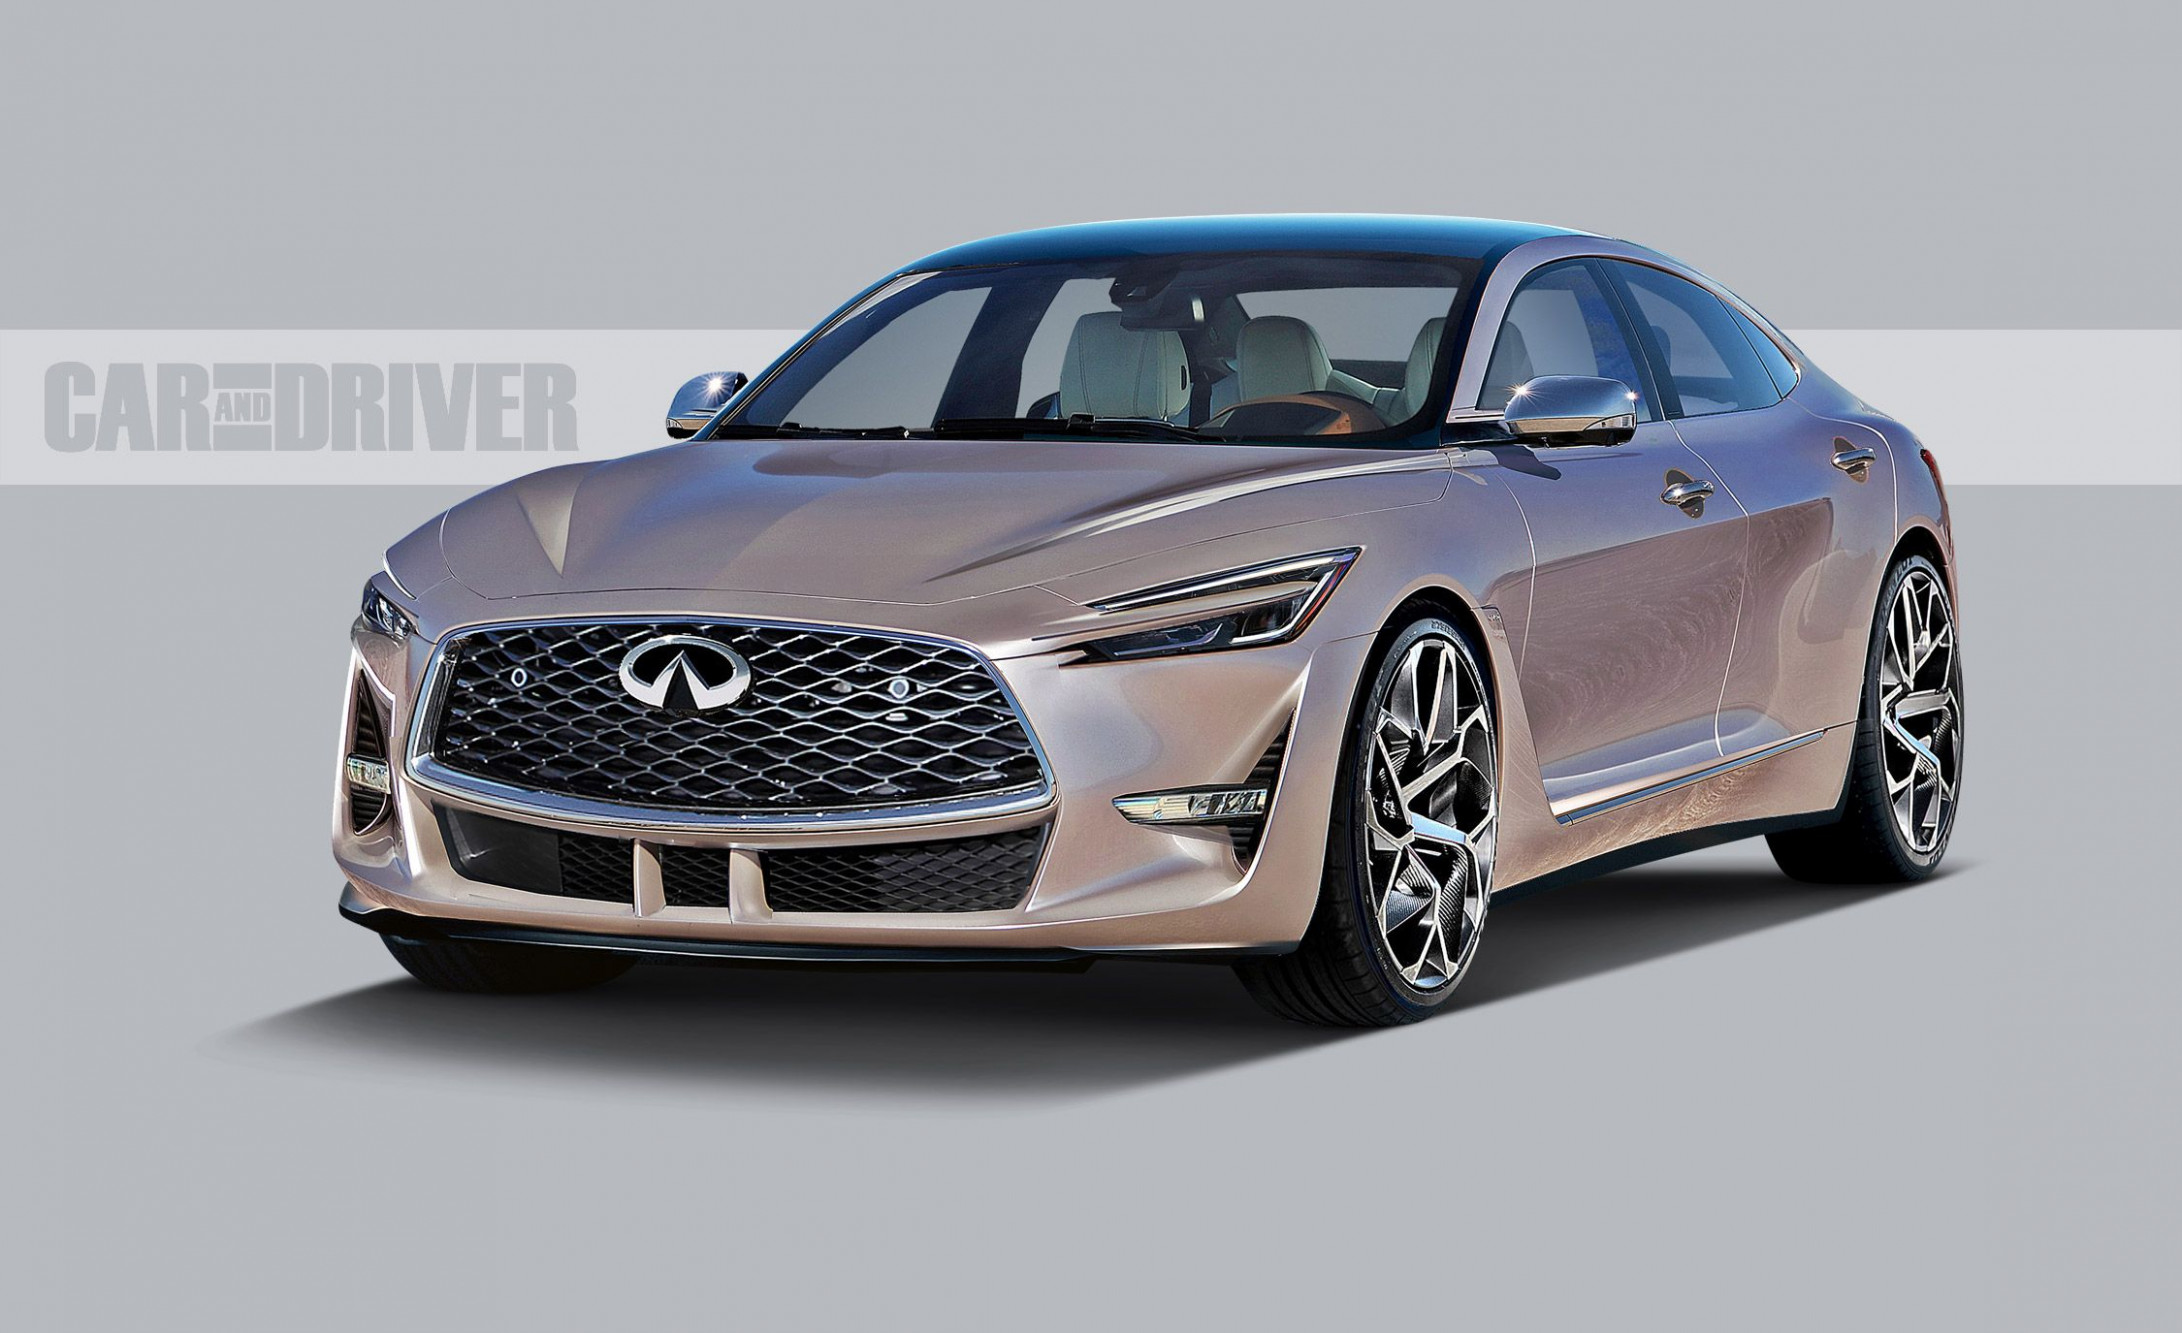 Prices When Does The 2022 Infiniti Qx80 Come Out